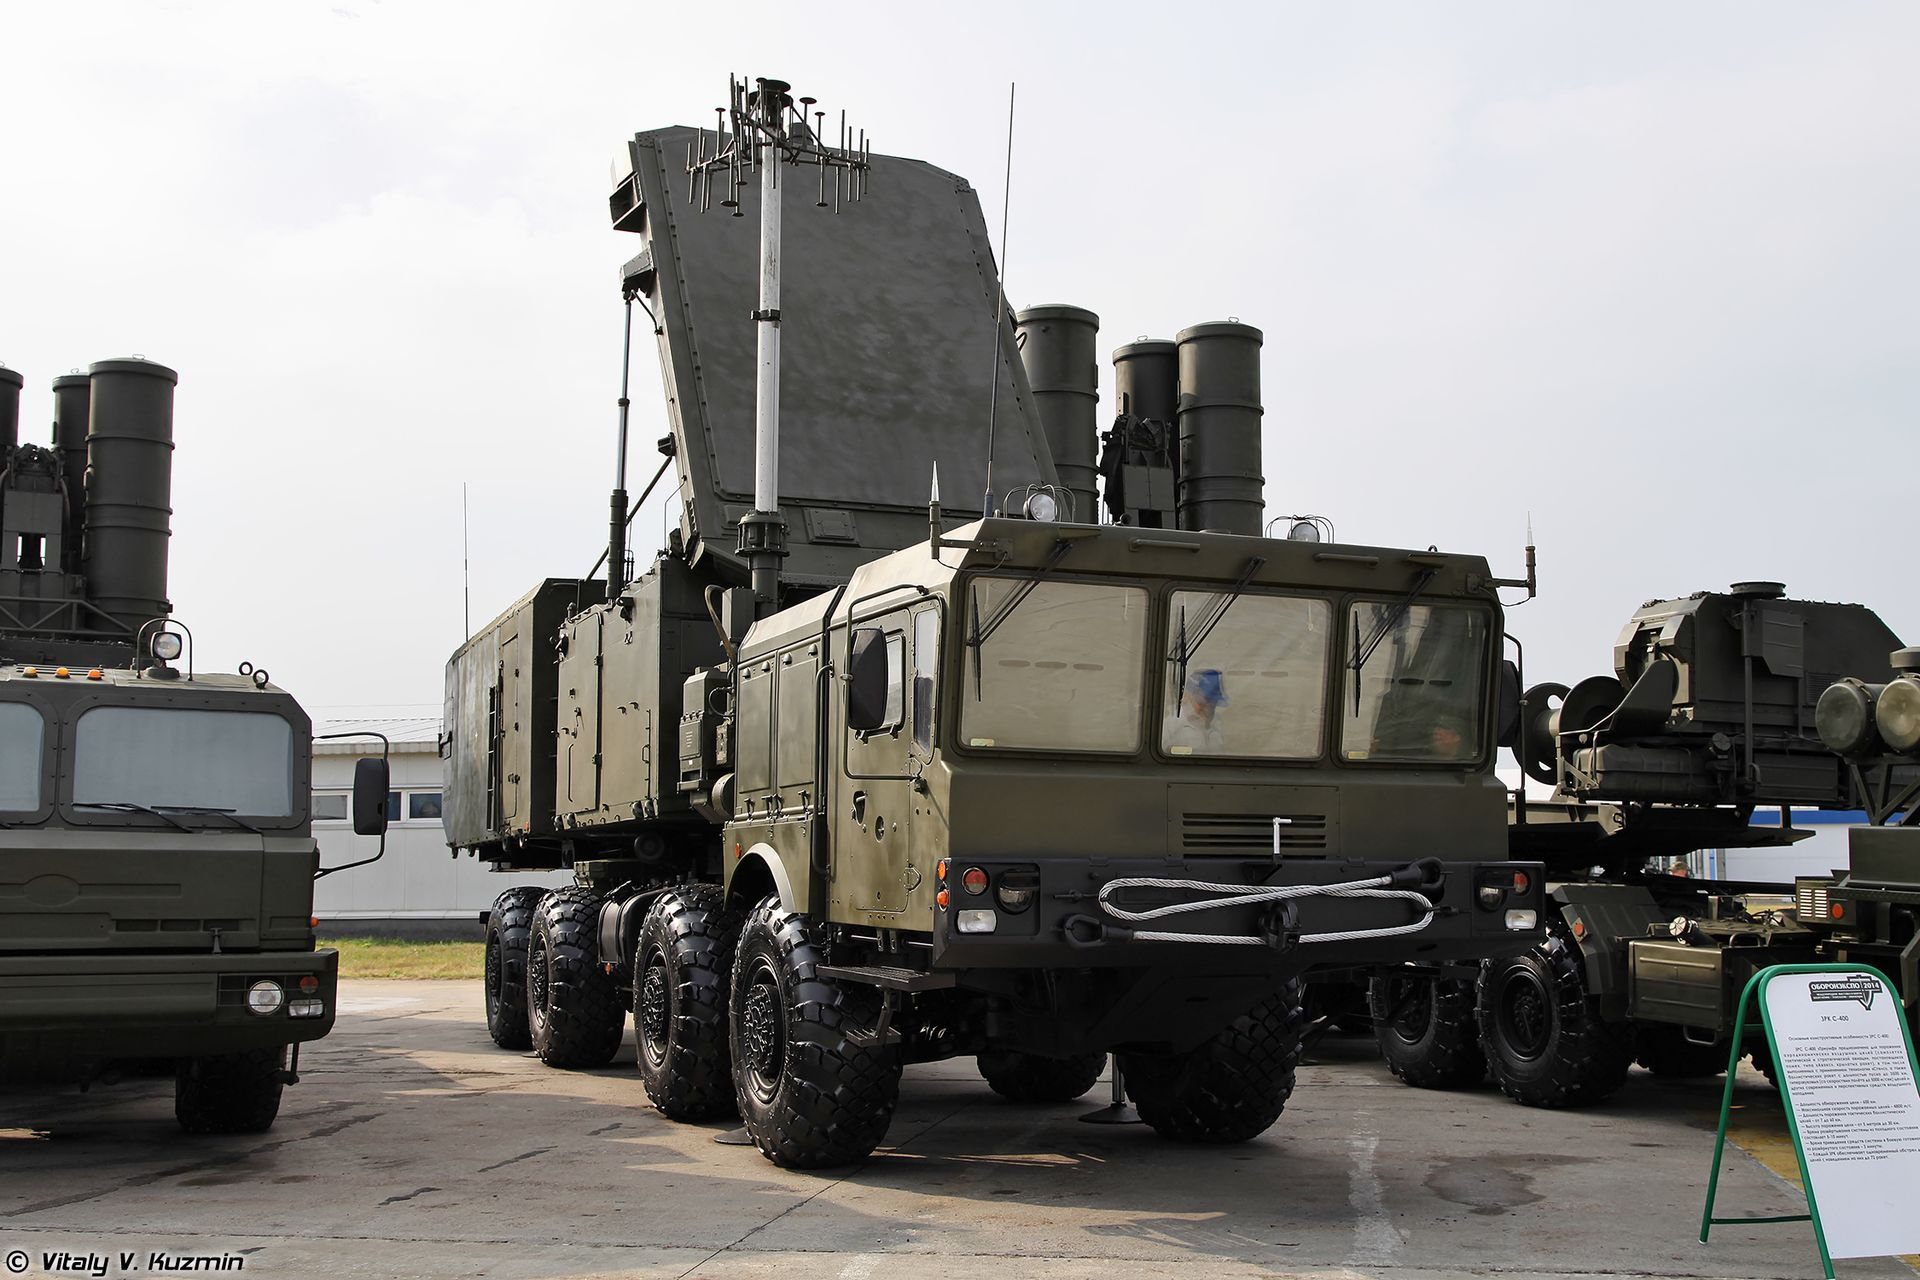 Truckmounted radar (With images) Trucks, System, Vehicles